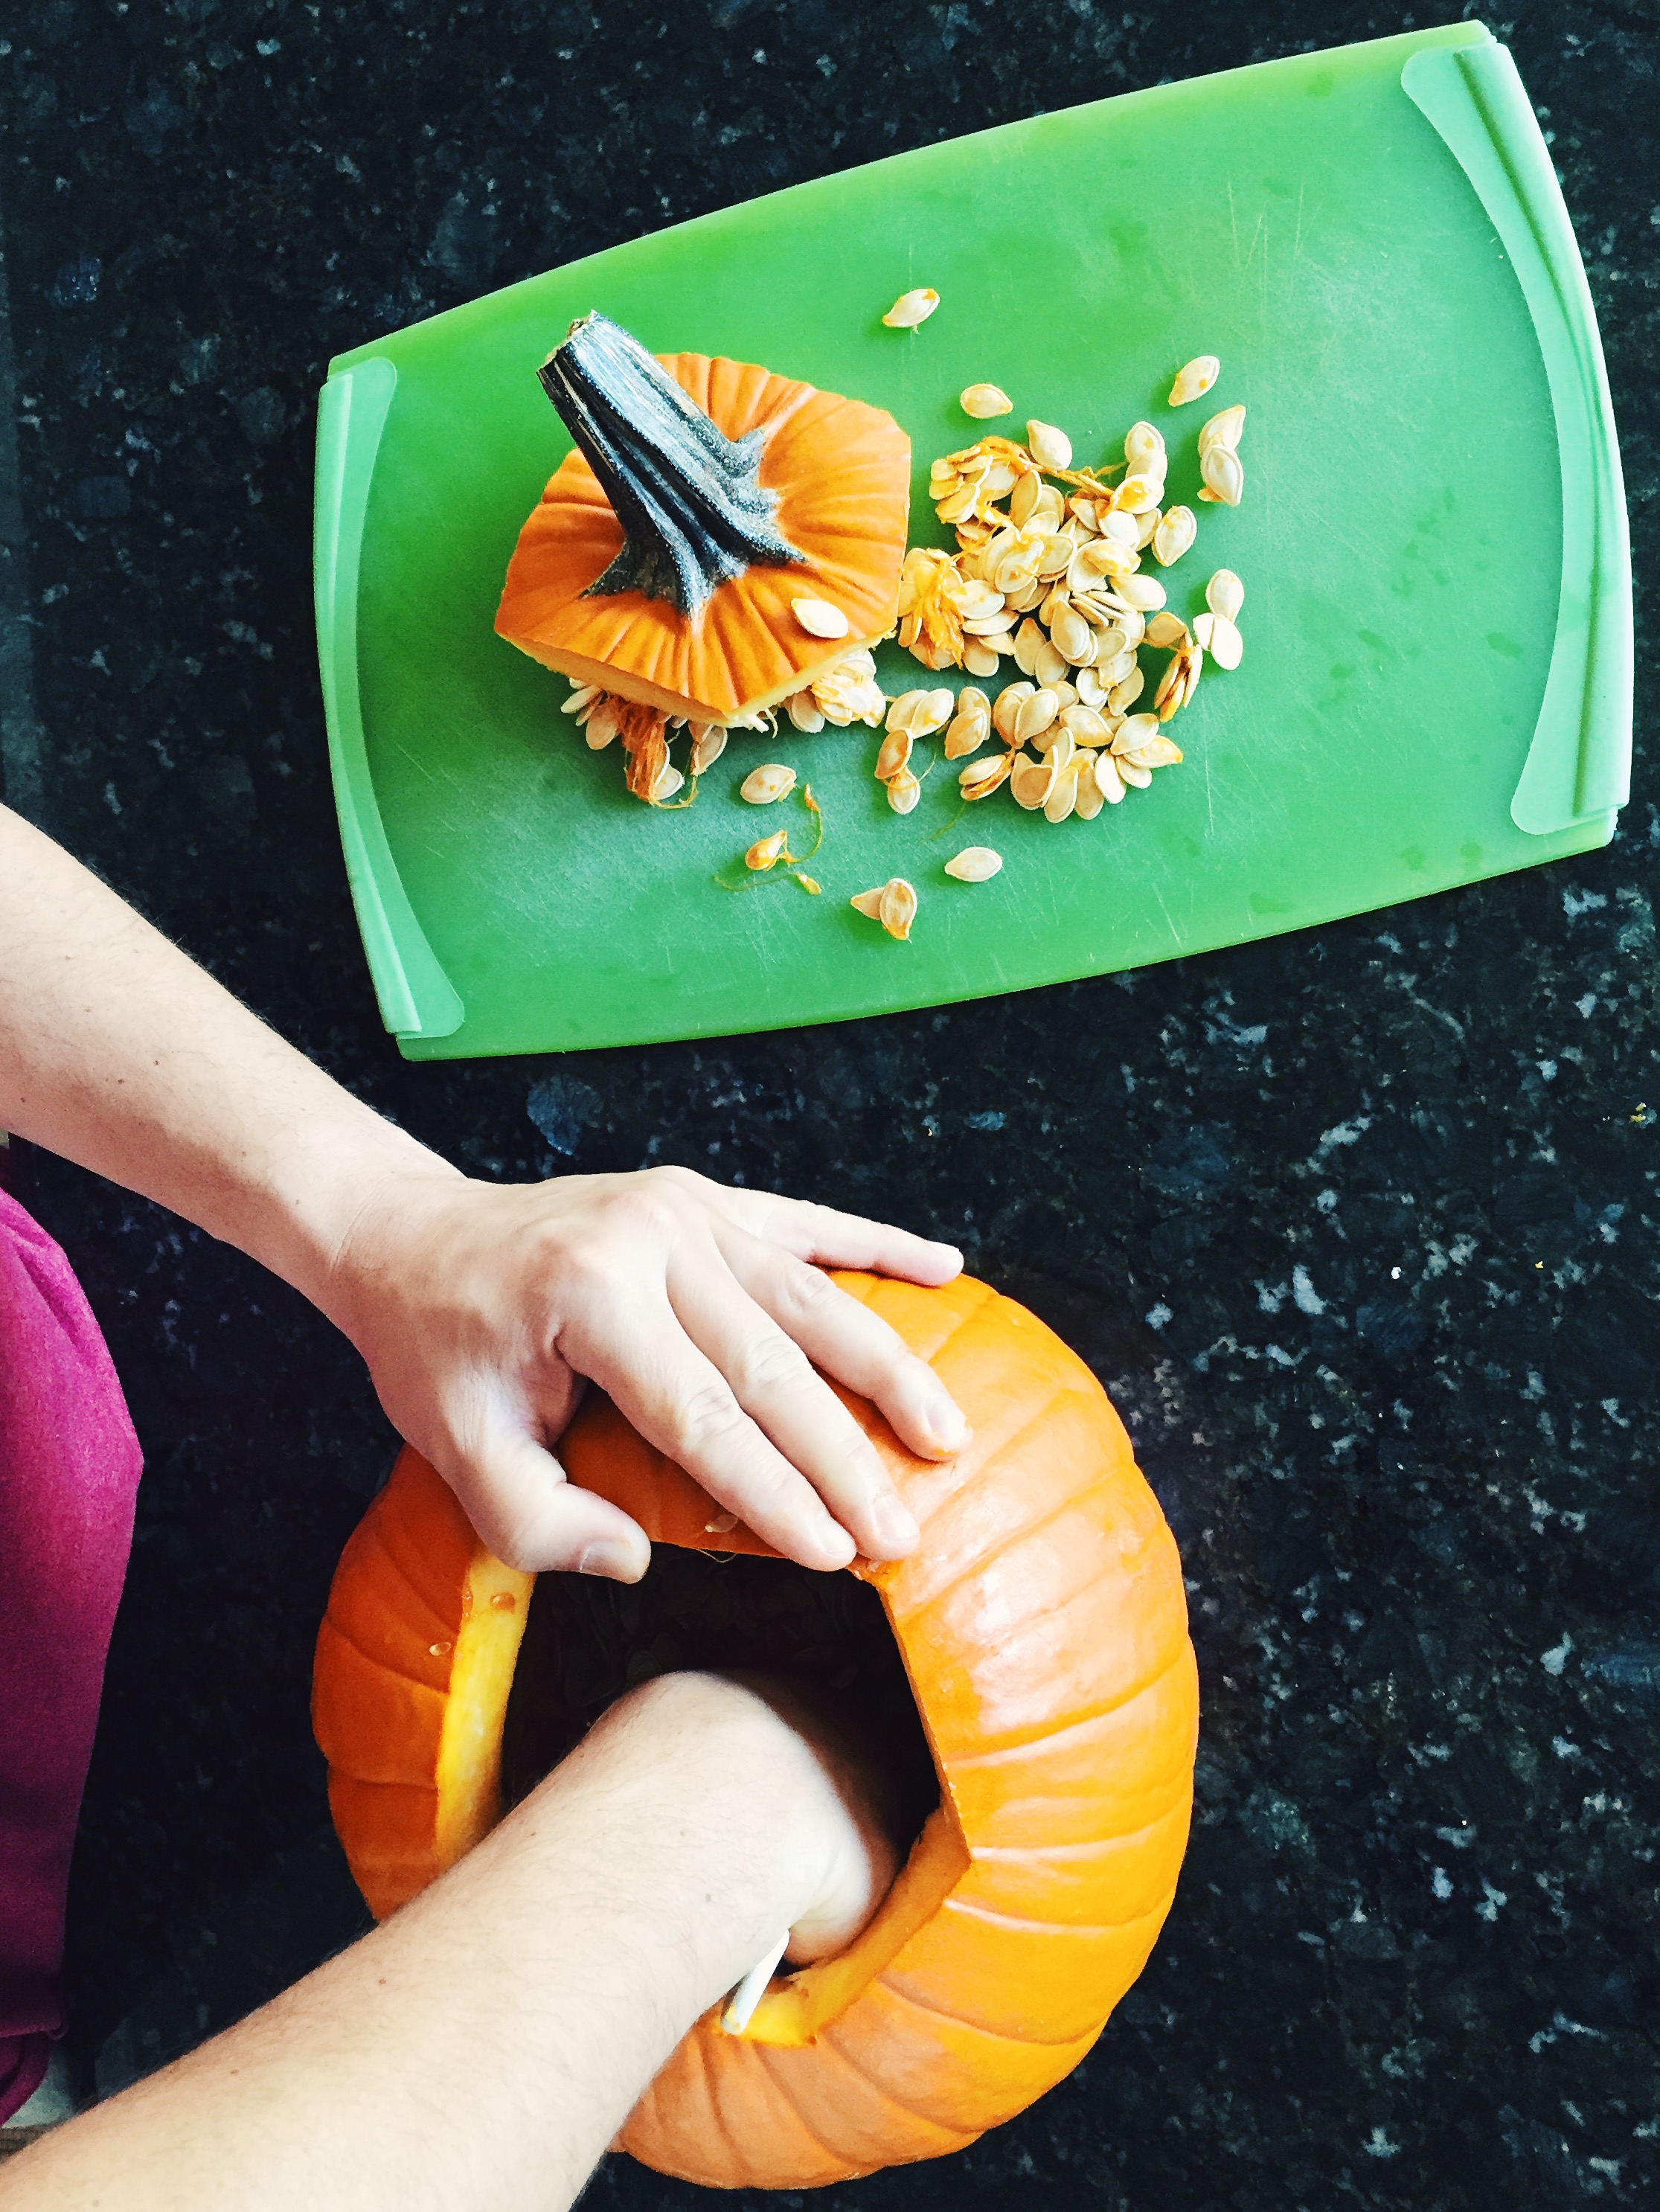 Clean out inside of pumpkin of all pumpkin seeds and fringy, stingy stuff. Rinse inside.